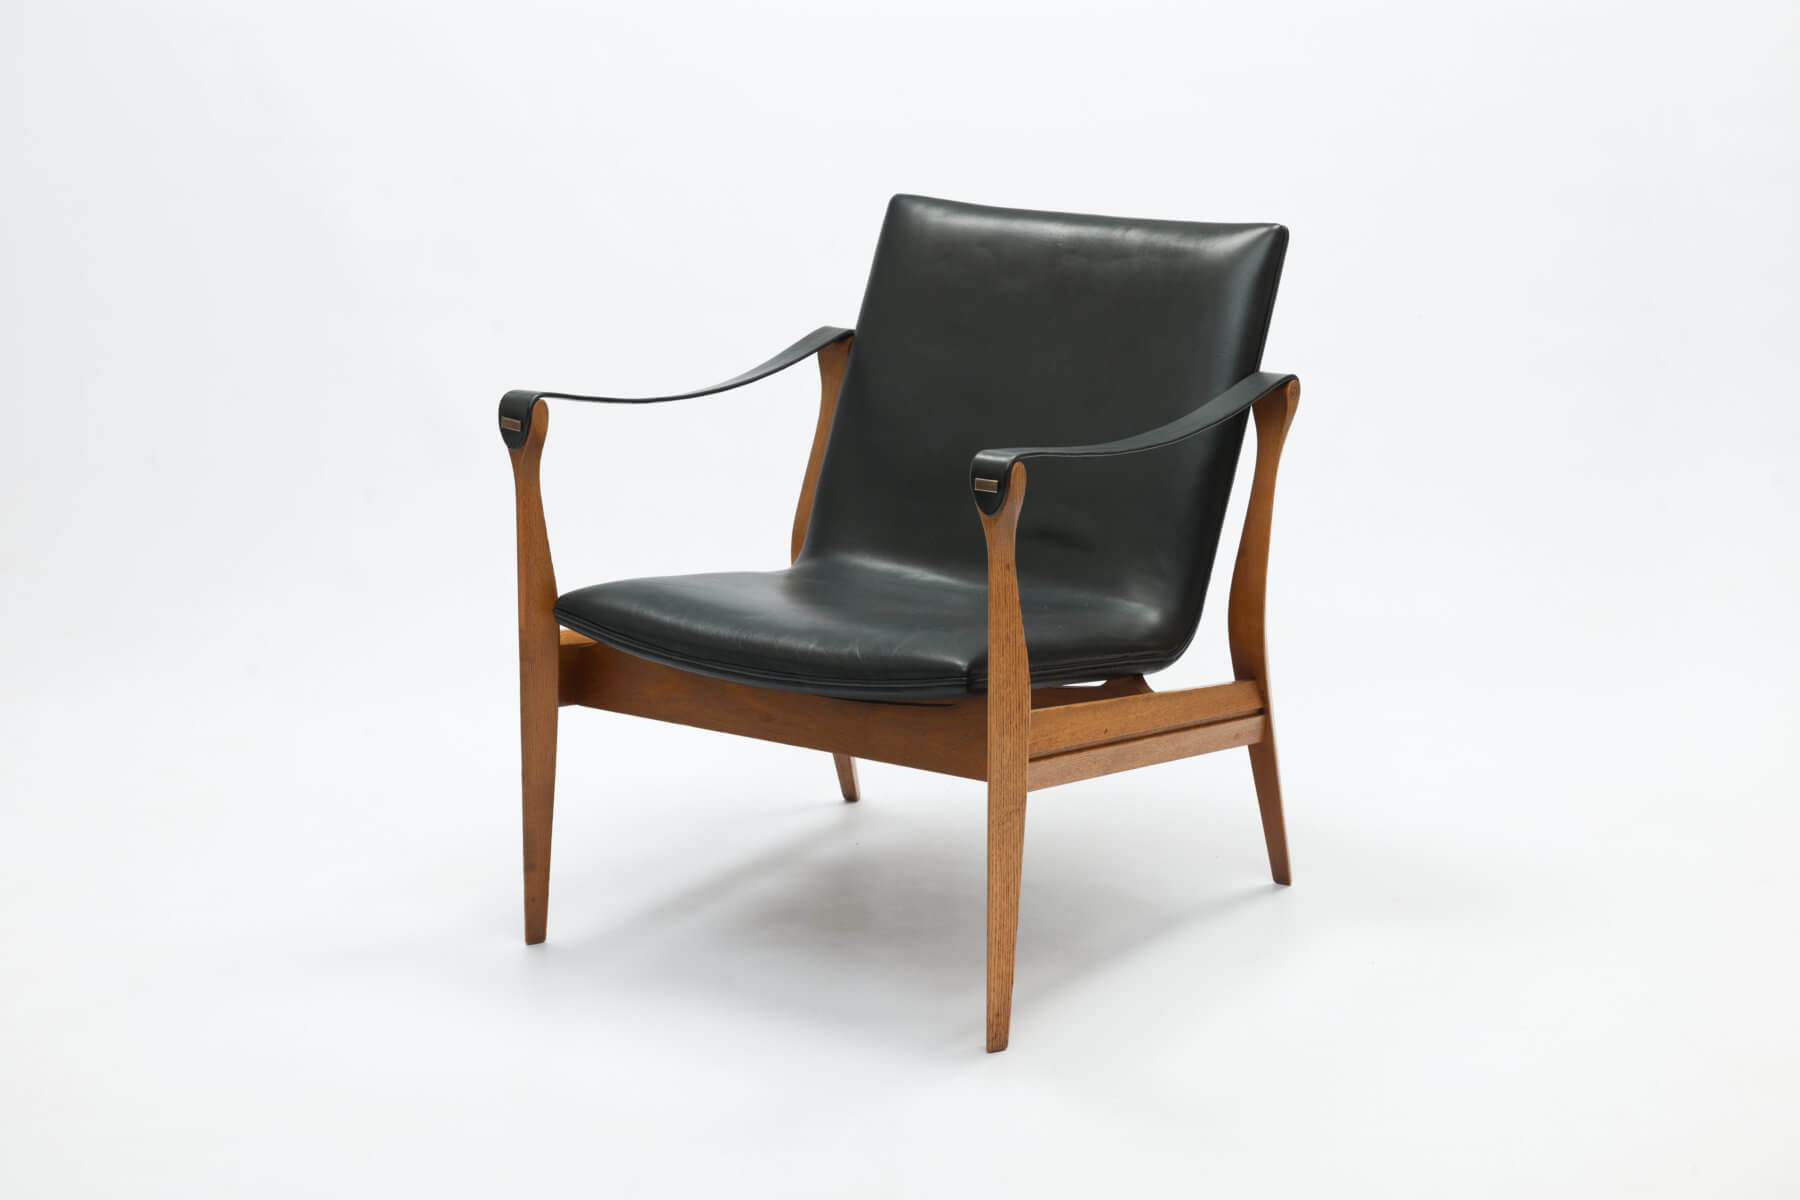 Vintage Safari Chair model 4305